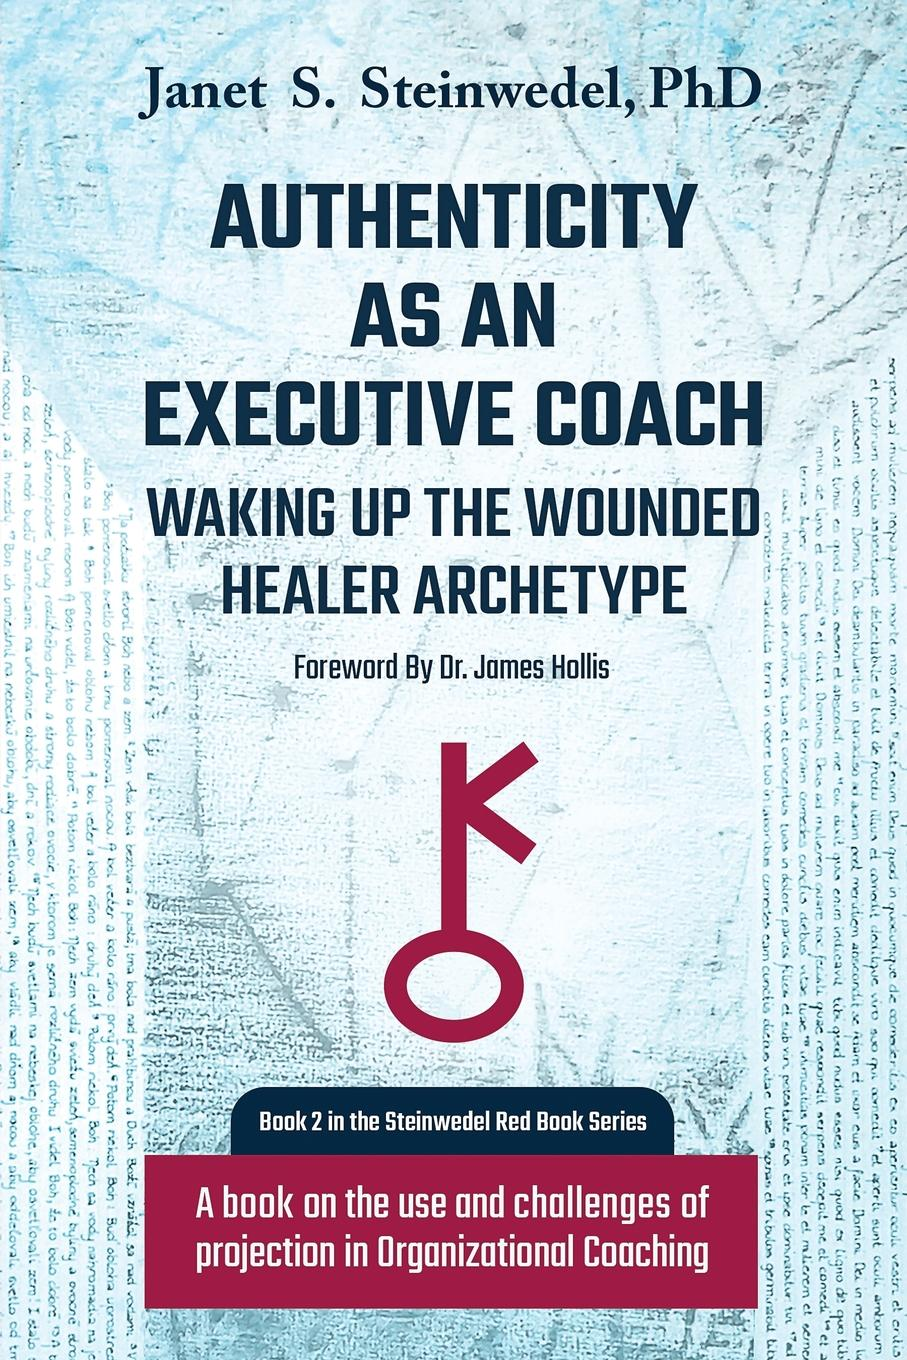 Janet S Steinwedel Authenticity as an Executive Coach. Waking up the Wounded Healer Archetype: A book on the use and challenges of projection in Organizational Coaching unleashing your inner leader an executive coach tells all